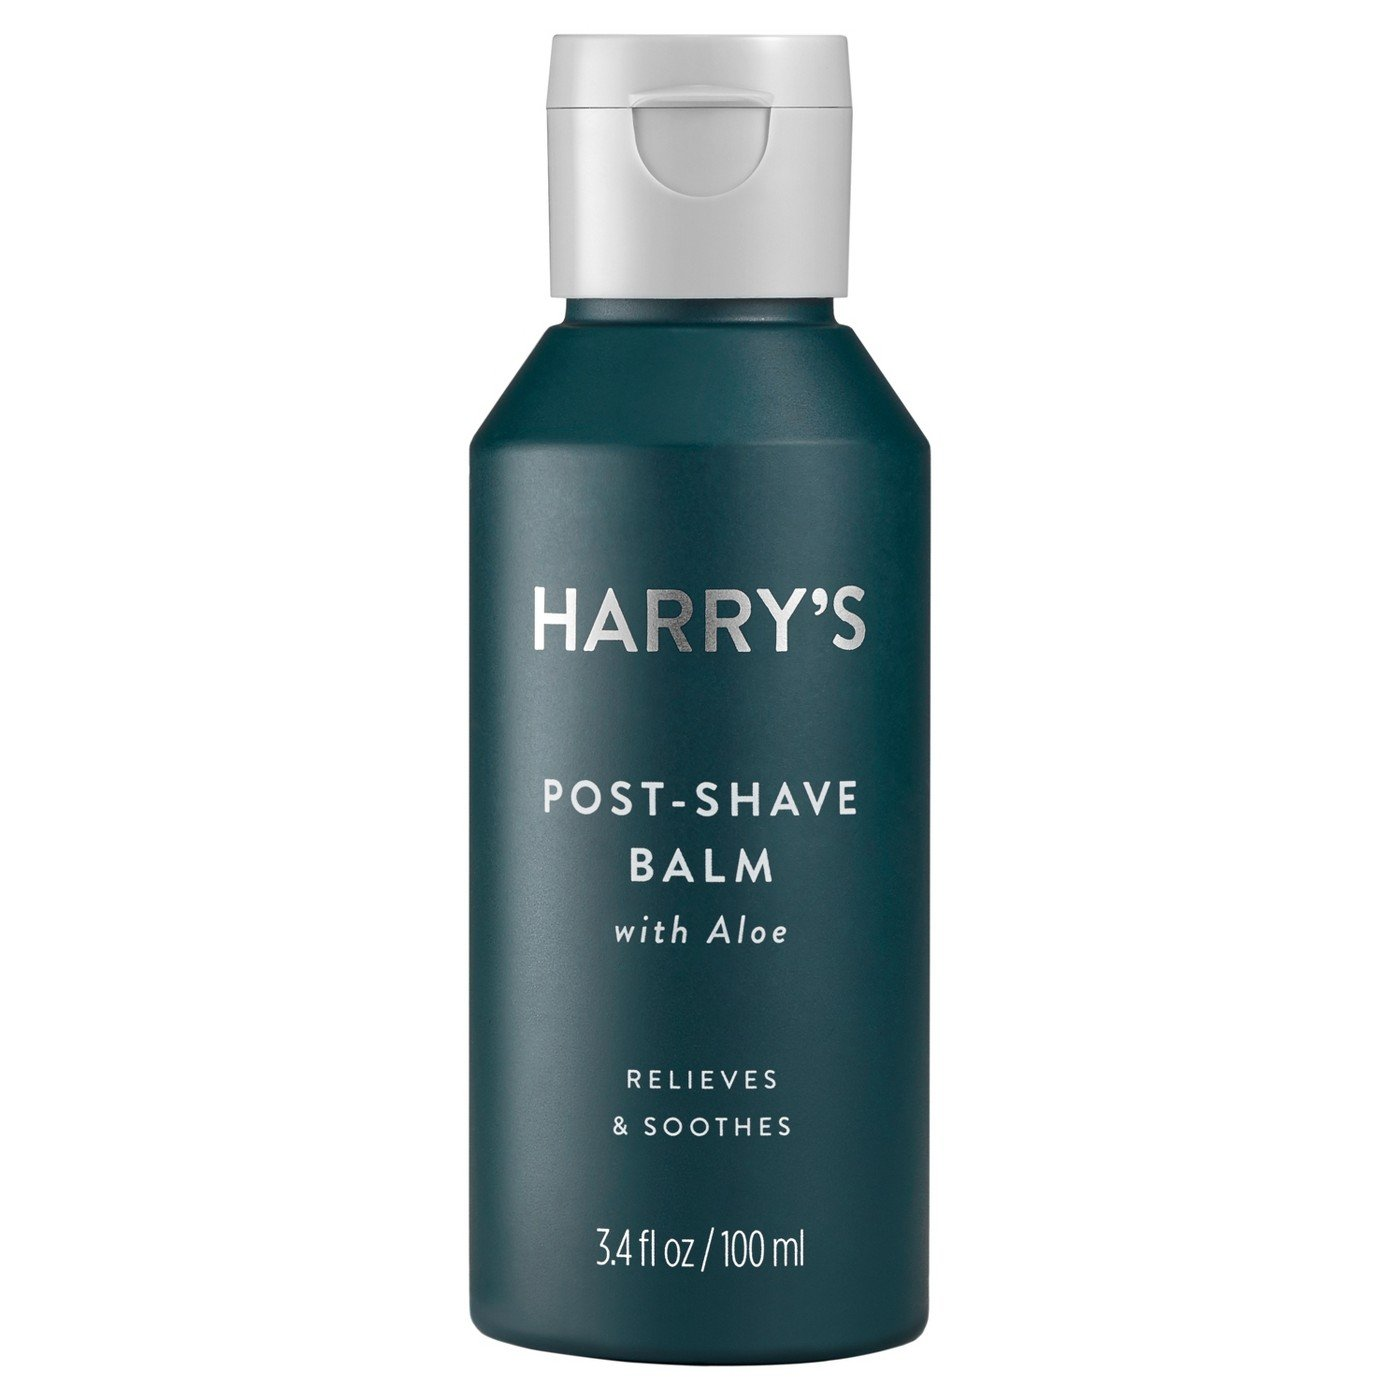 Harry's Post-Shave Balm with Aloe Harry's